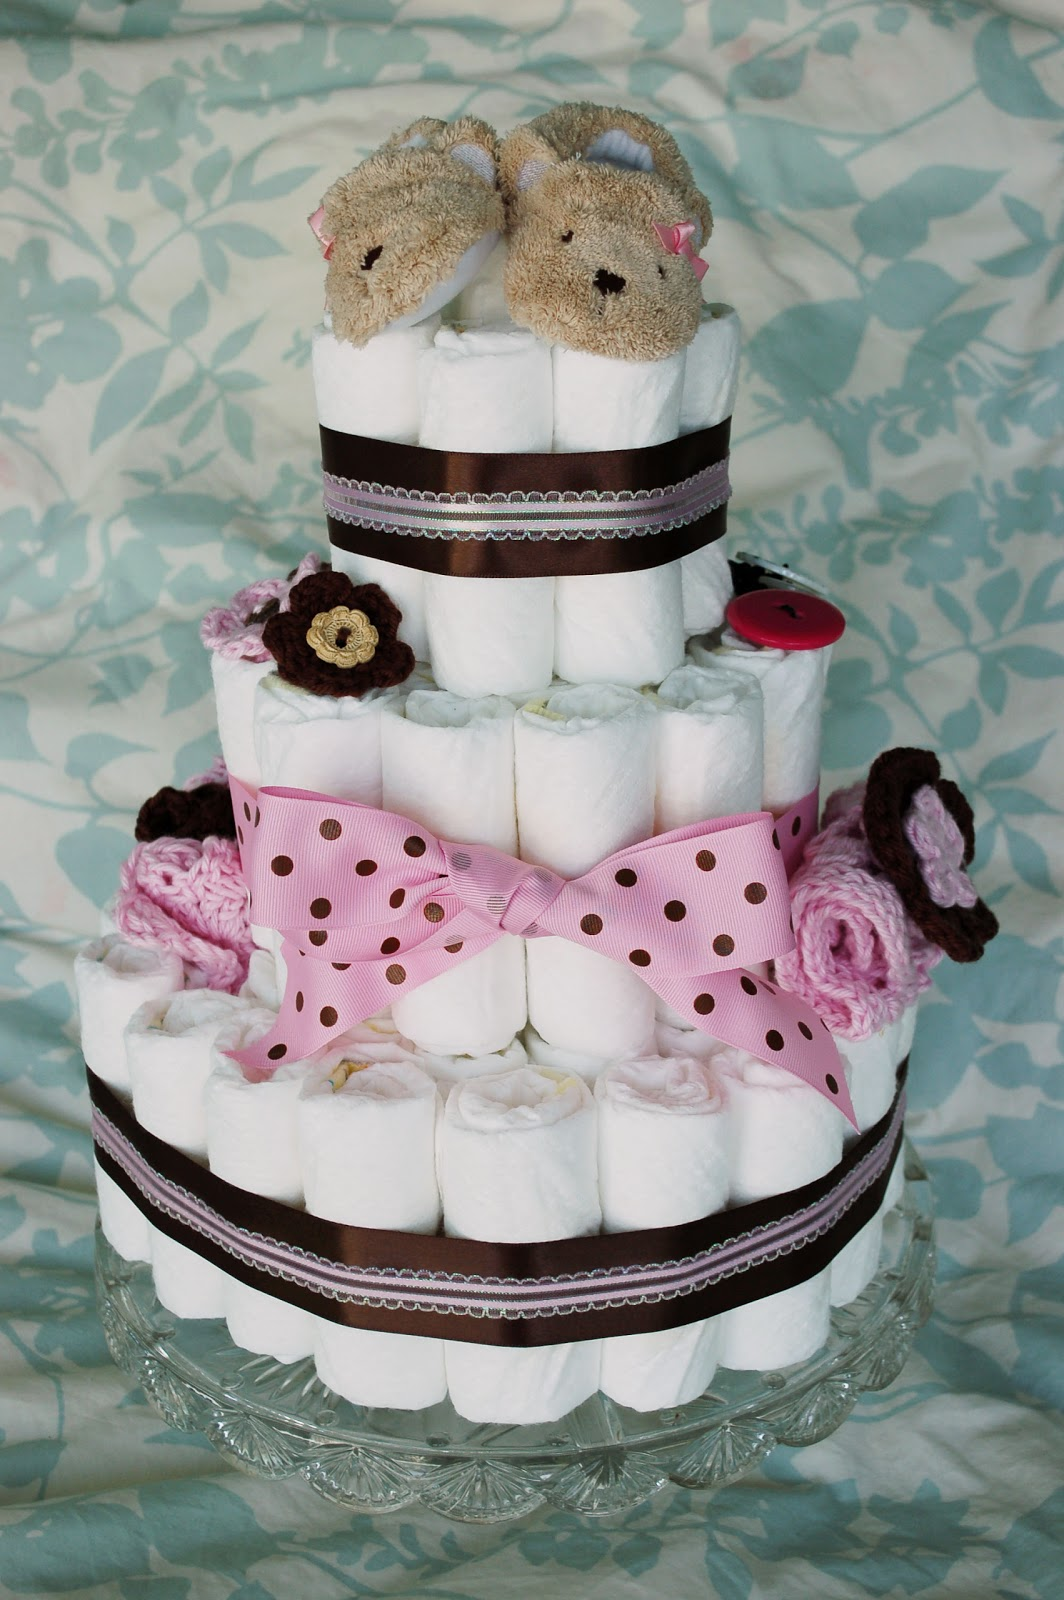 cake is a great homemade baby shower gift that doubles as a baby